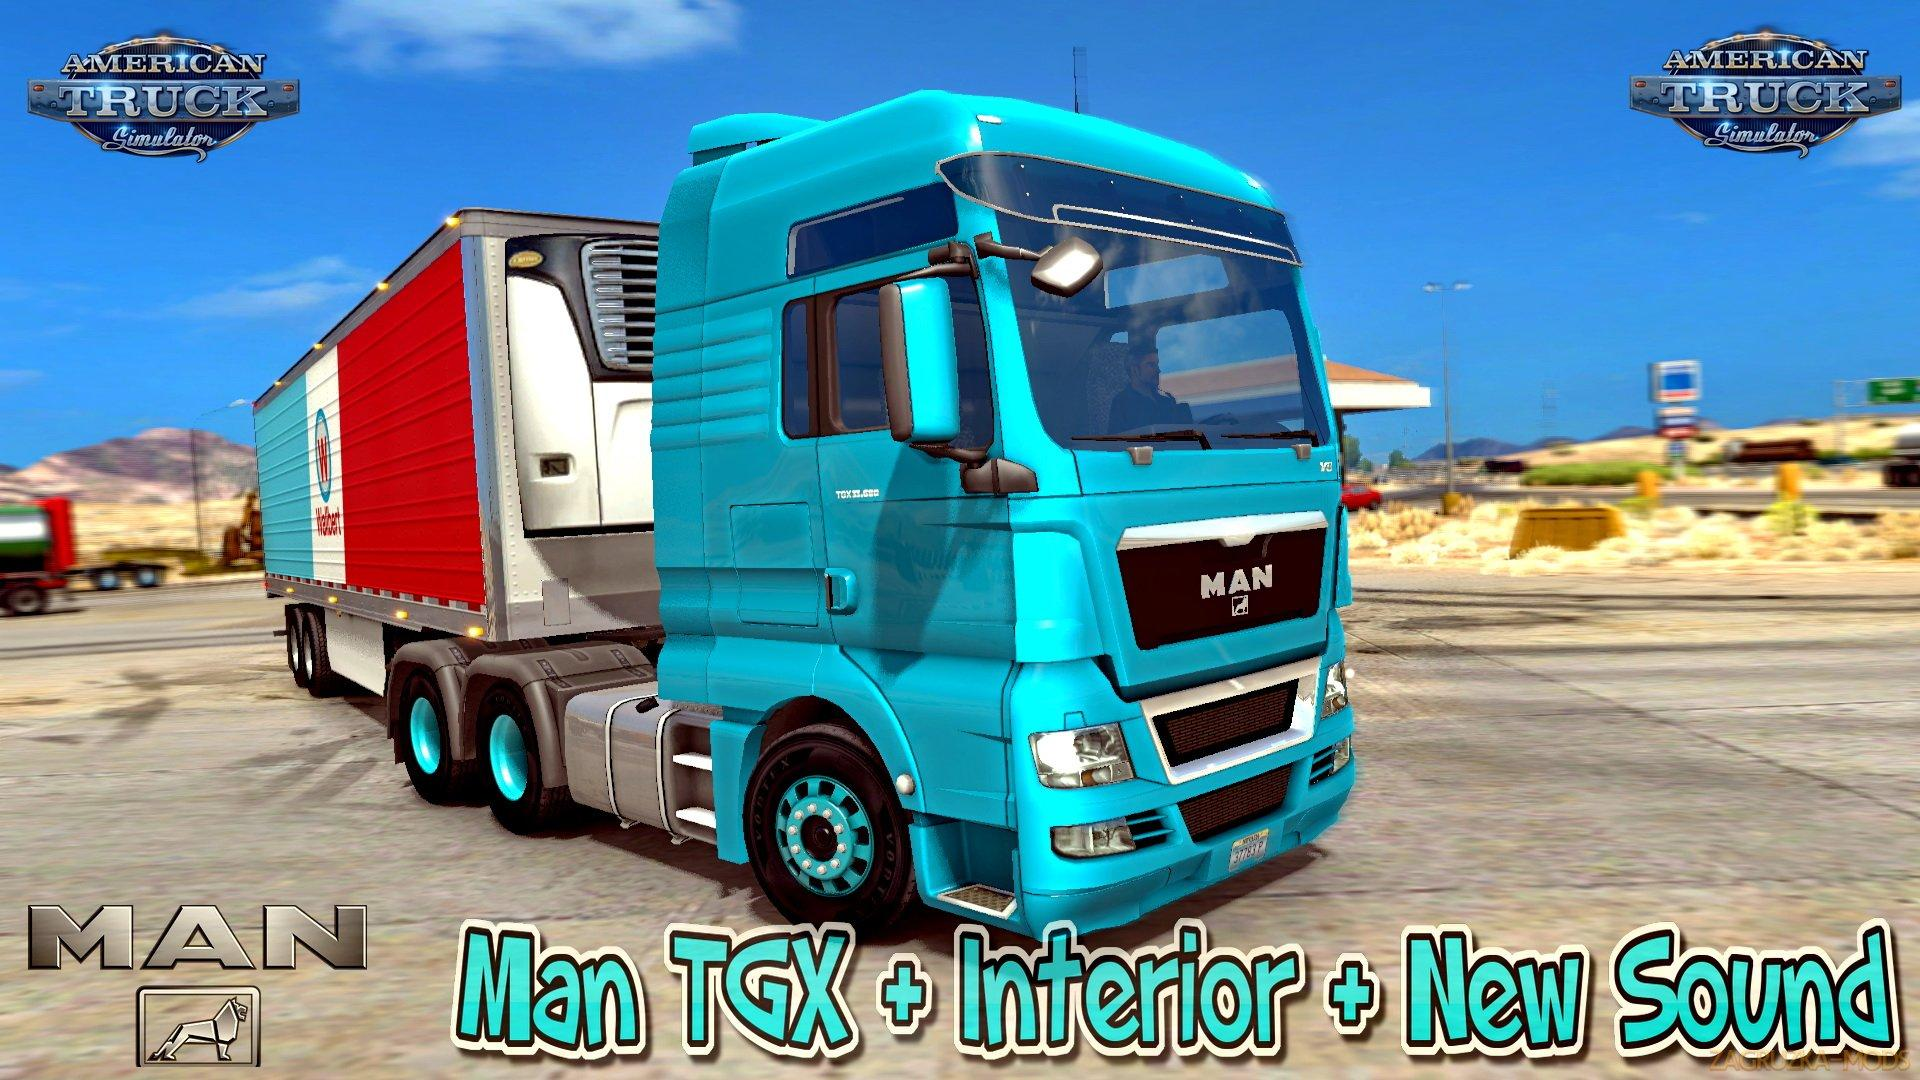 MAN TGX TRUCK MOD + INTERIOR + NEW SOUND FOR ATS 1 6 X V1 0